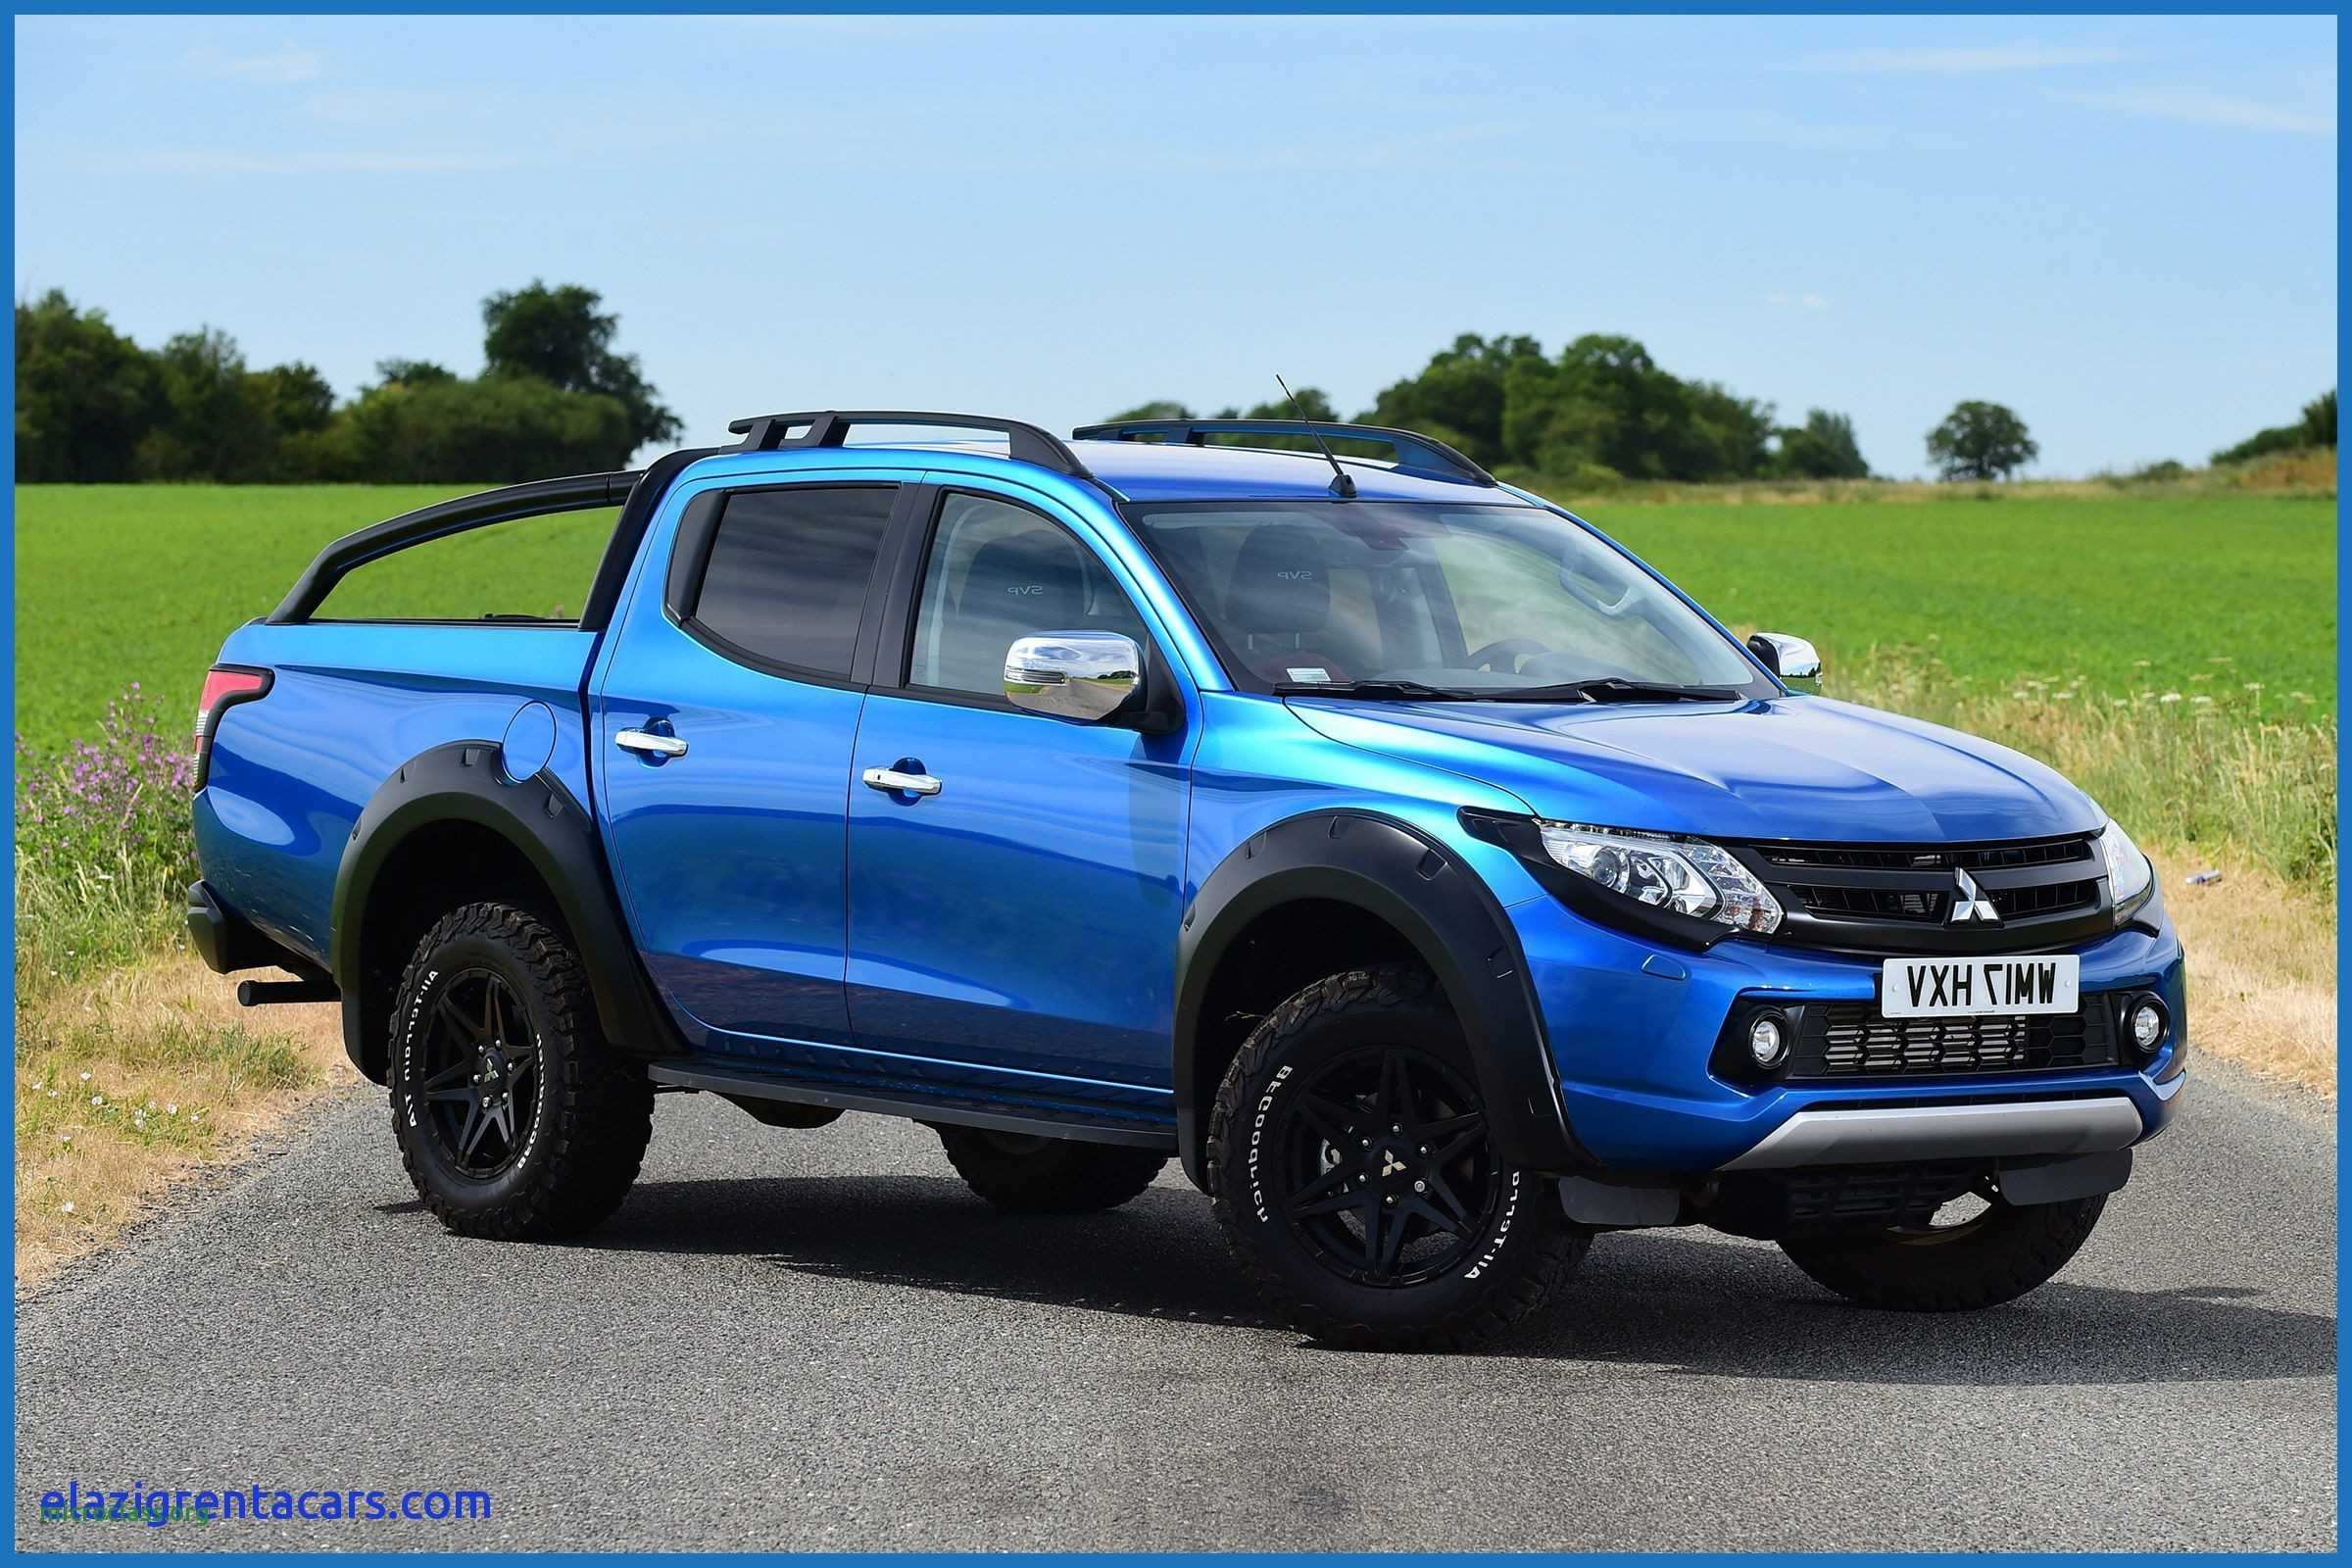 15 Gallery of 2019 Mitsubishi Triton Perfect Outdoor Release Date for 2019 Mitsubishi Triton Perfect Outdoor